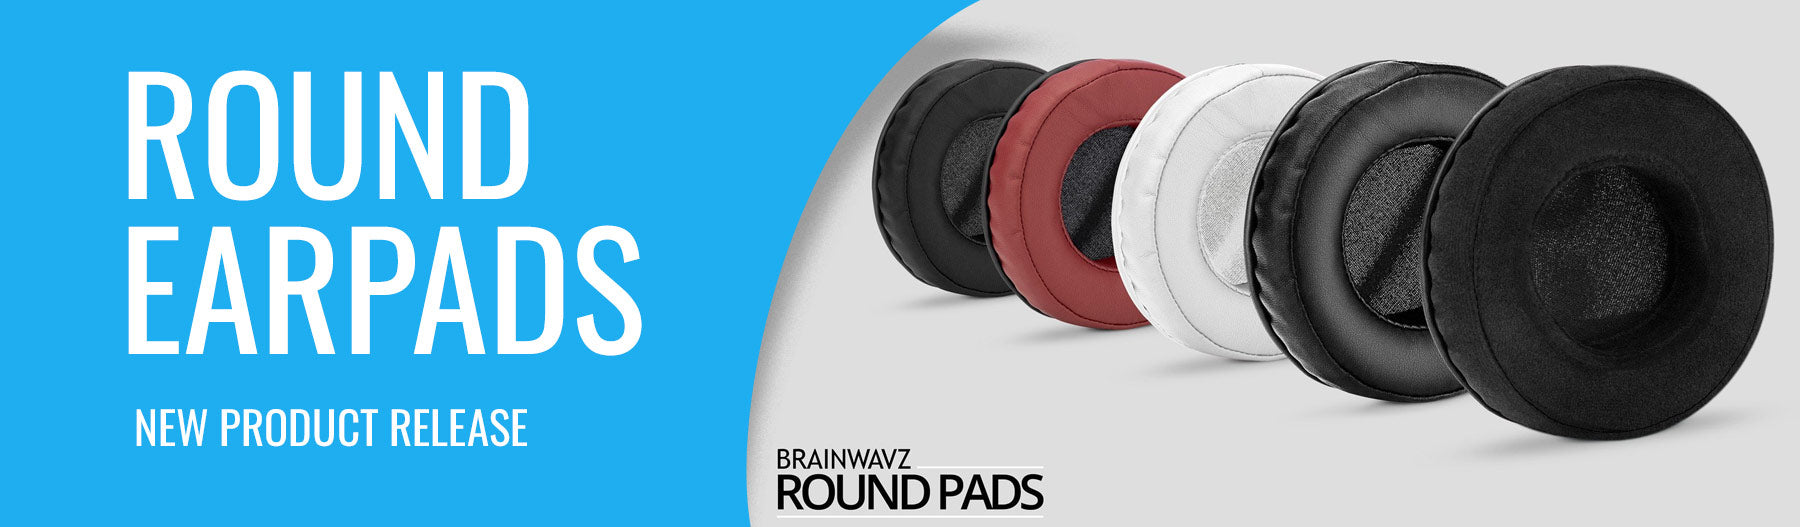 New round headphone earpads from Brainwavz